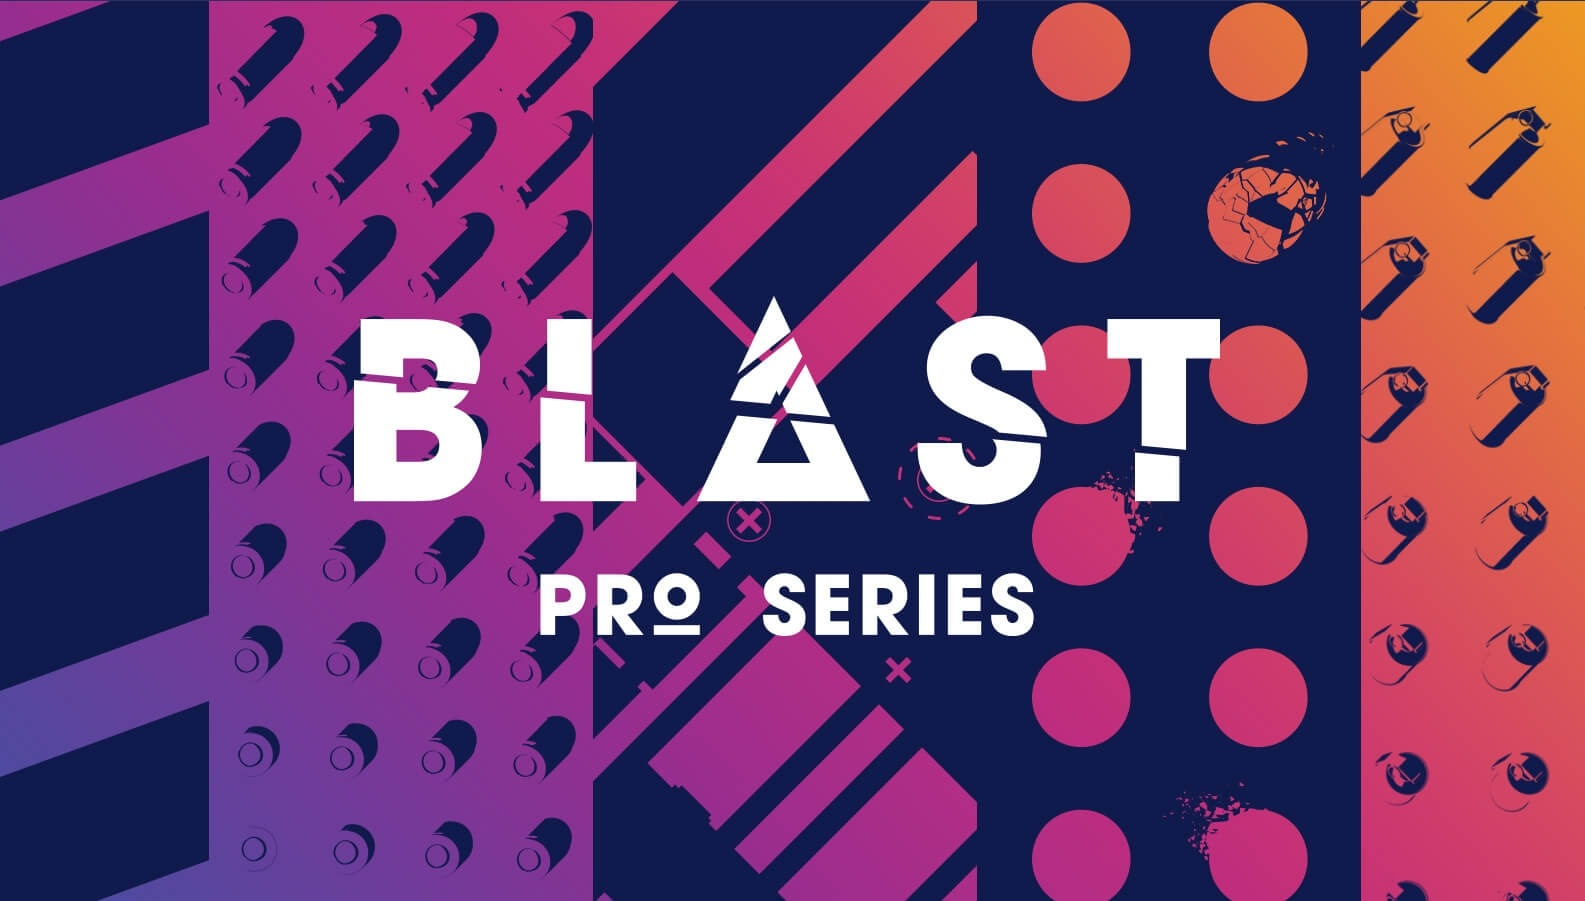 Blast Pro Series talent lineup revealed; Four new tournaments announced.